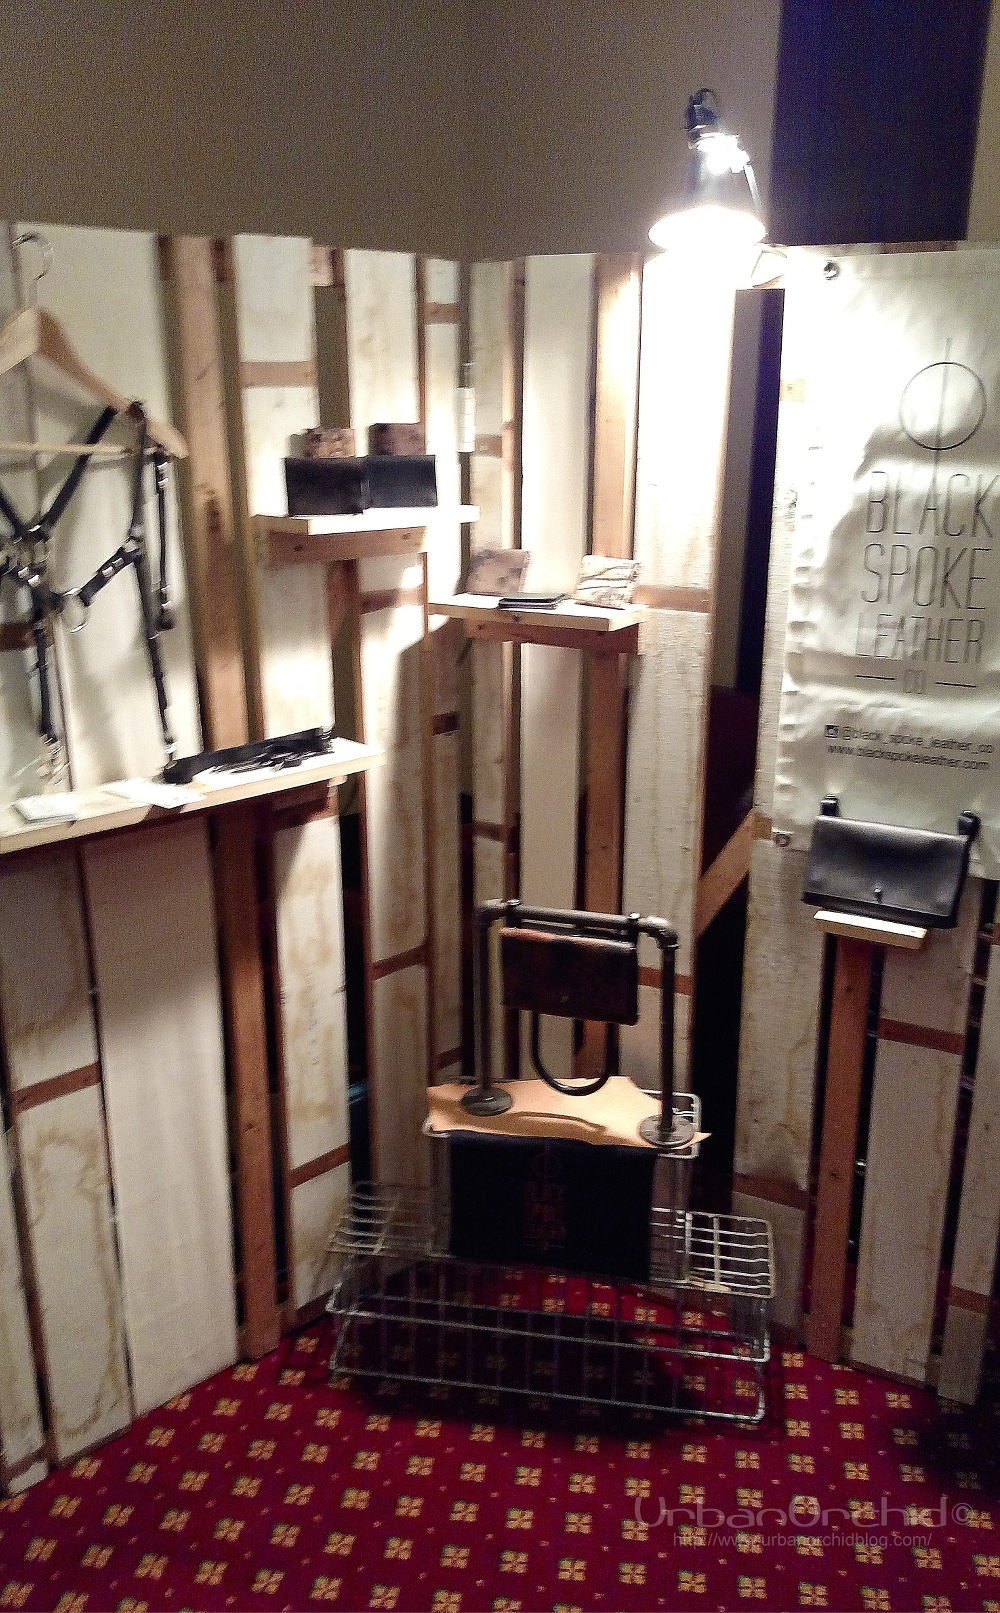 Black Spoke Leather Co pop up at LARK.